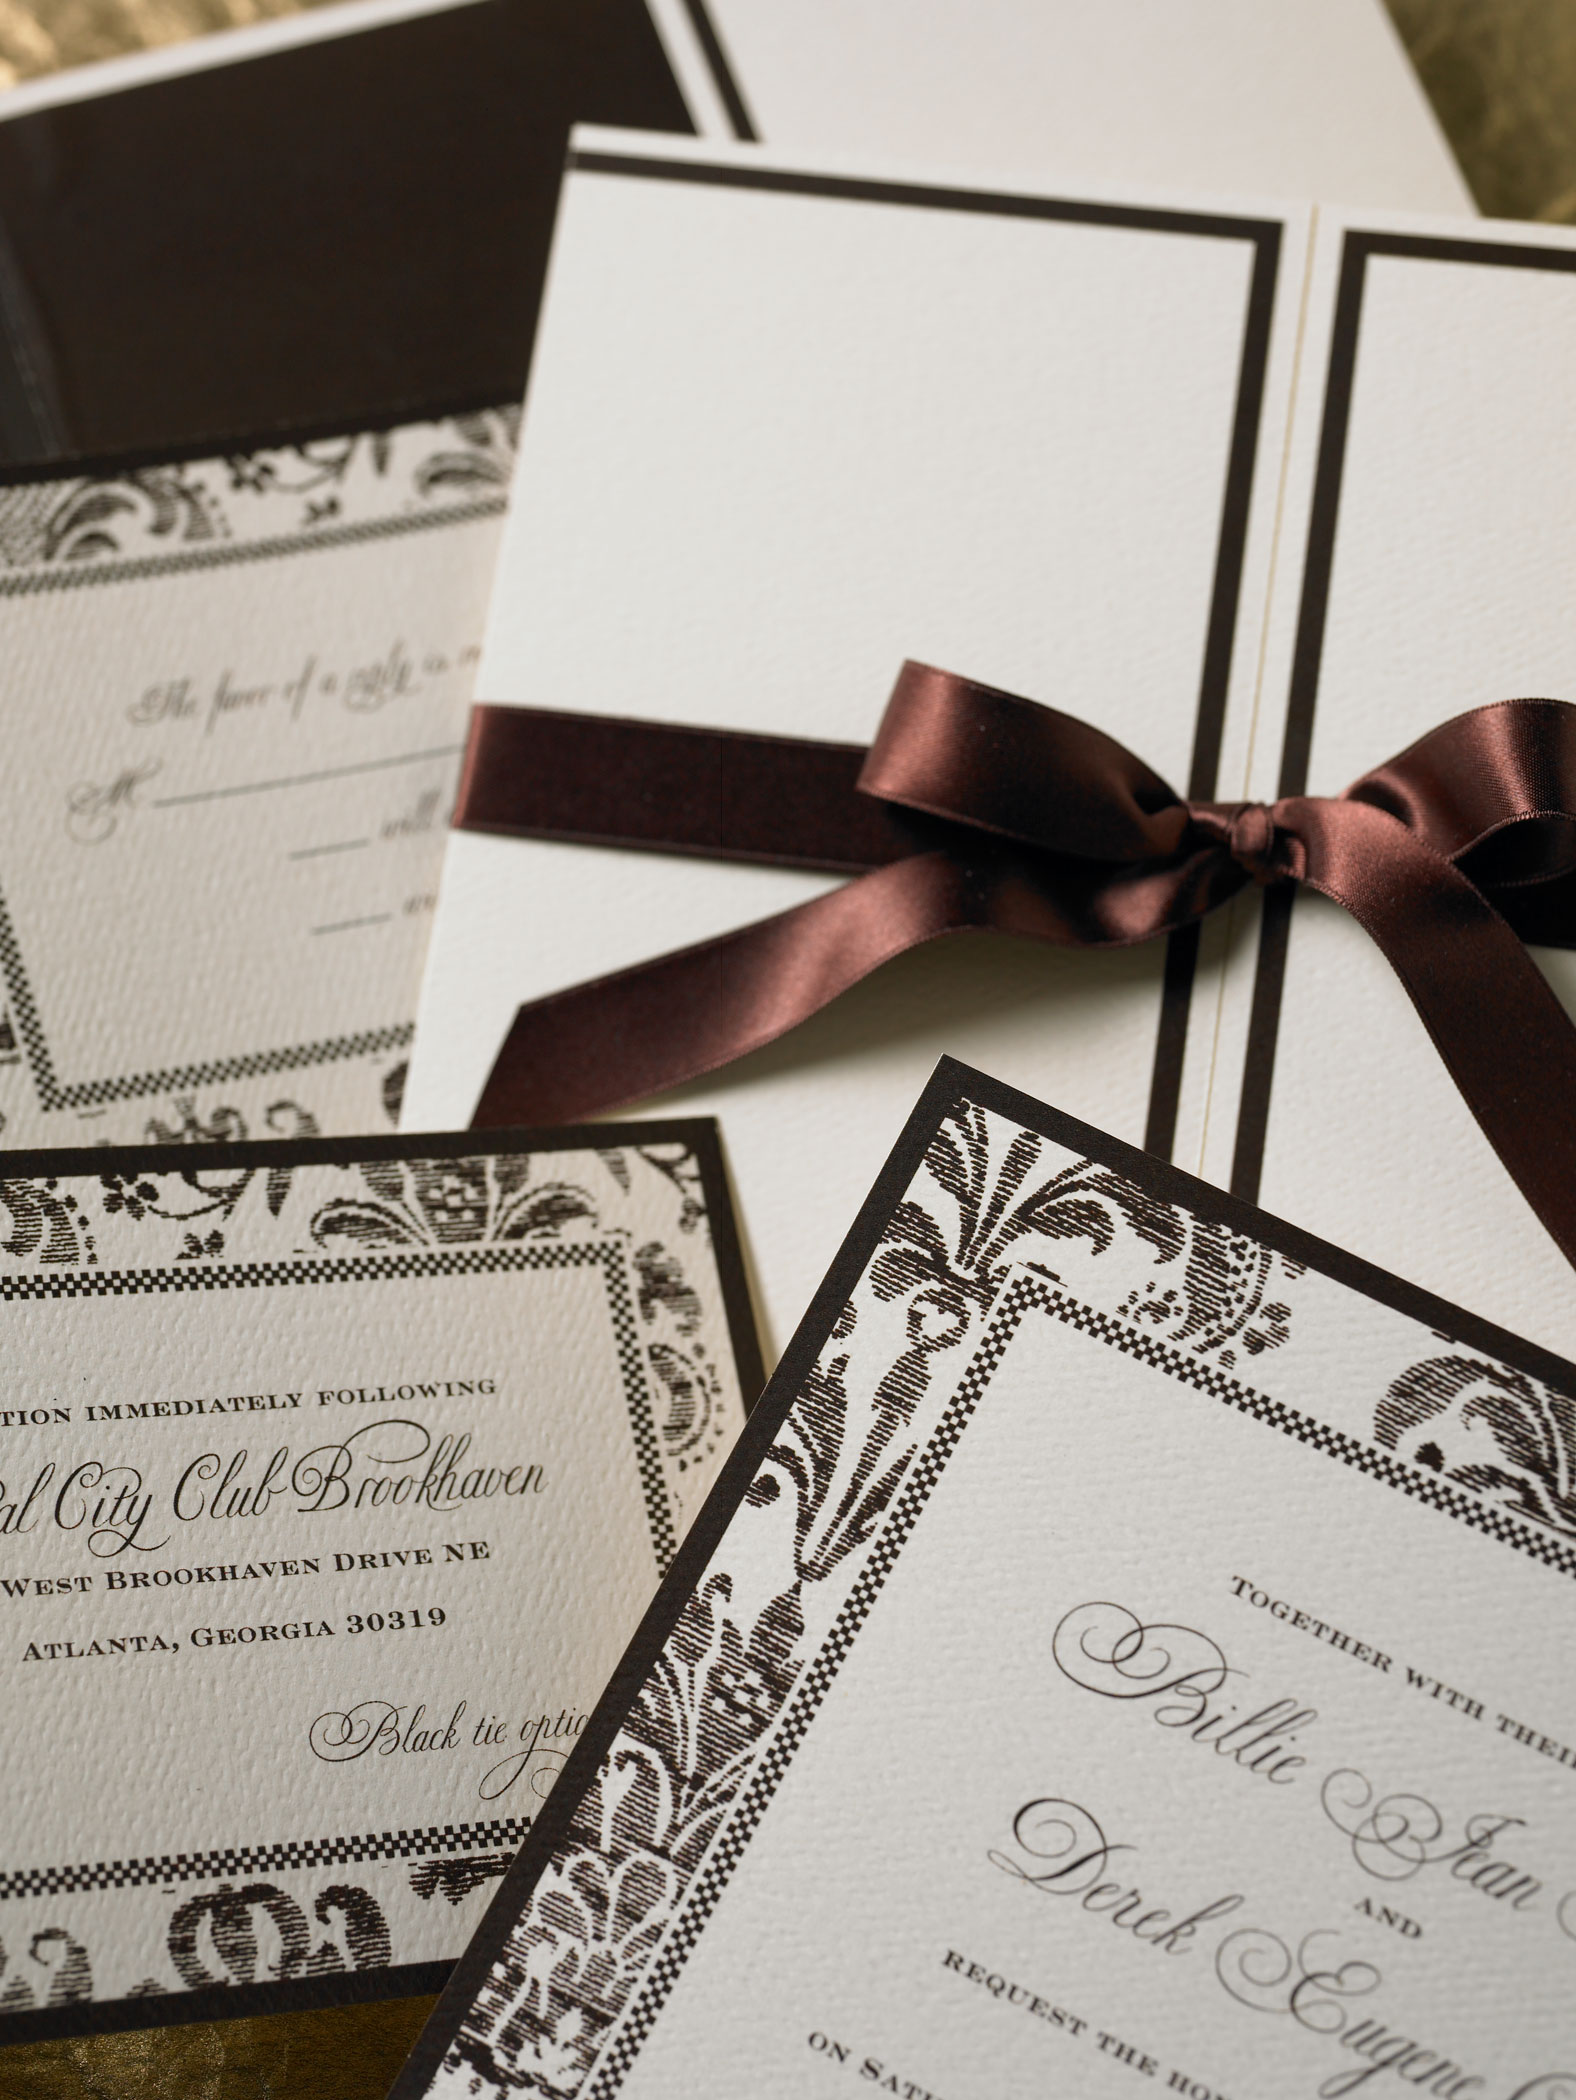 Layered vintage damask wedding invitation, reception card and response card flat printed in chocolate brown ink on soft white felt weave paper. Pearlized invitation jacket with satin ribbon. Chocolate brown envelopes.